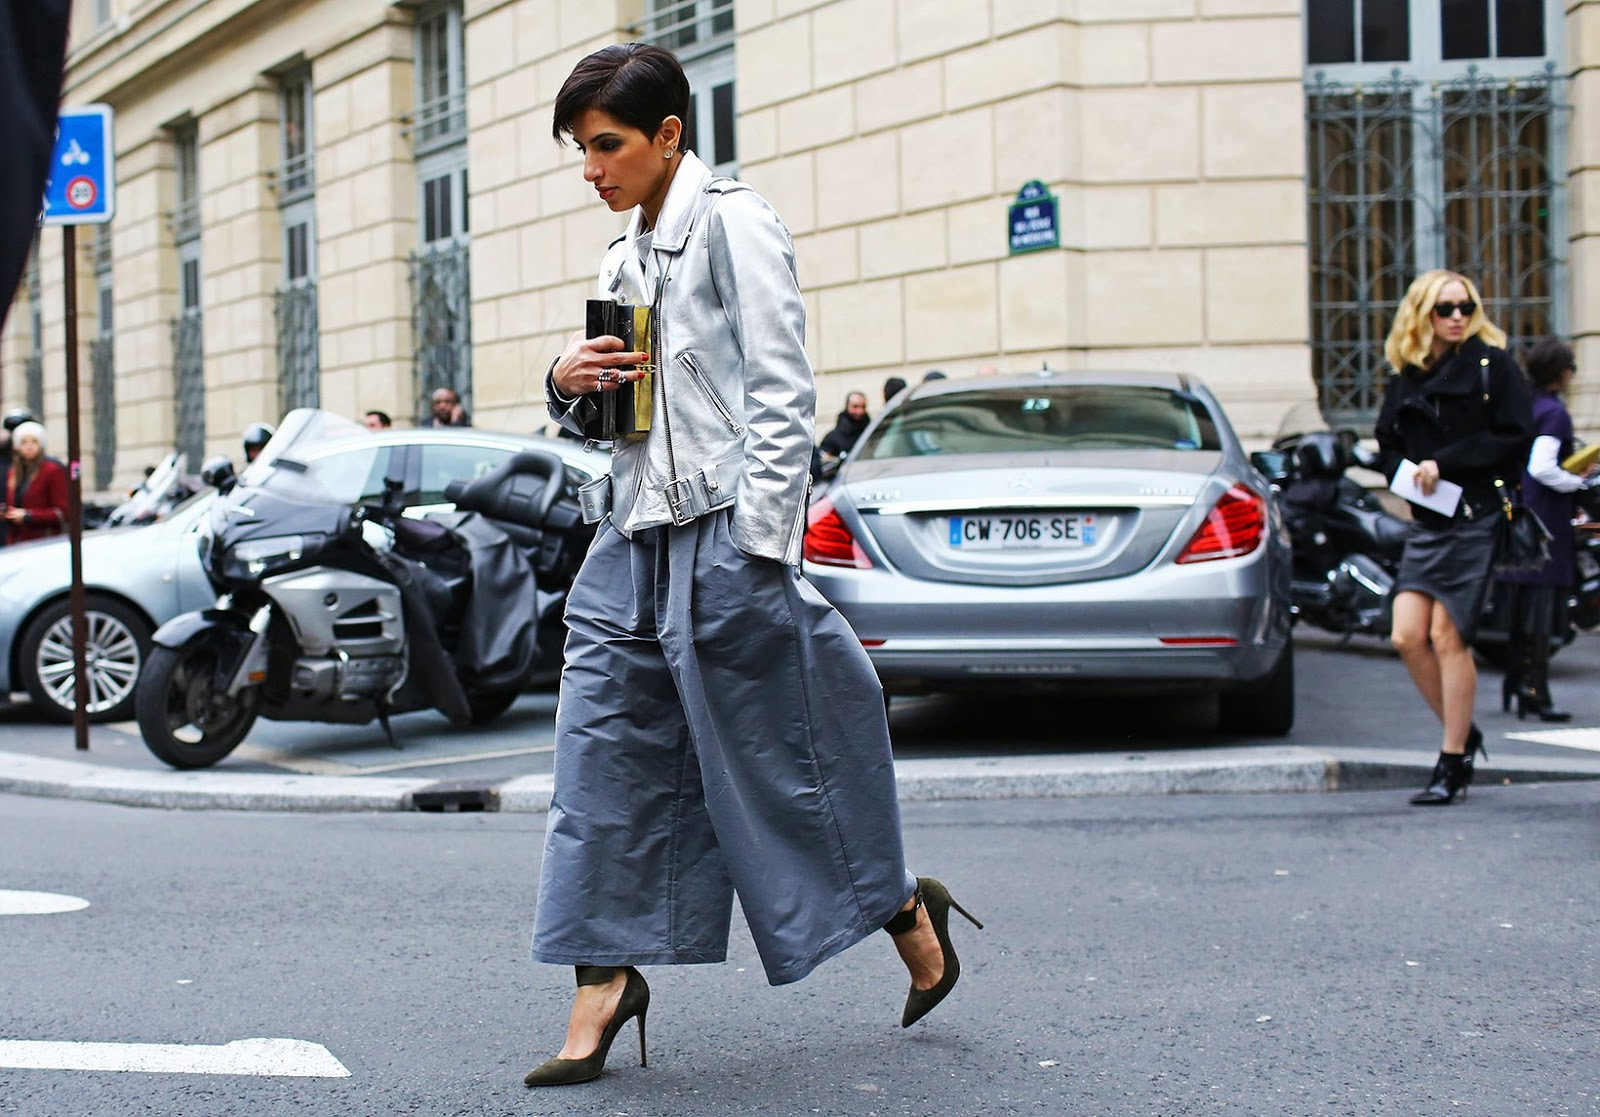 Miss Vendella_Inspire me_Princess Deena Abdulaziz_Fashion Week Streetstyle